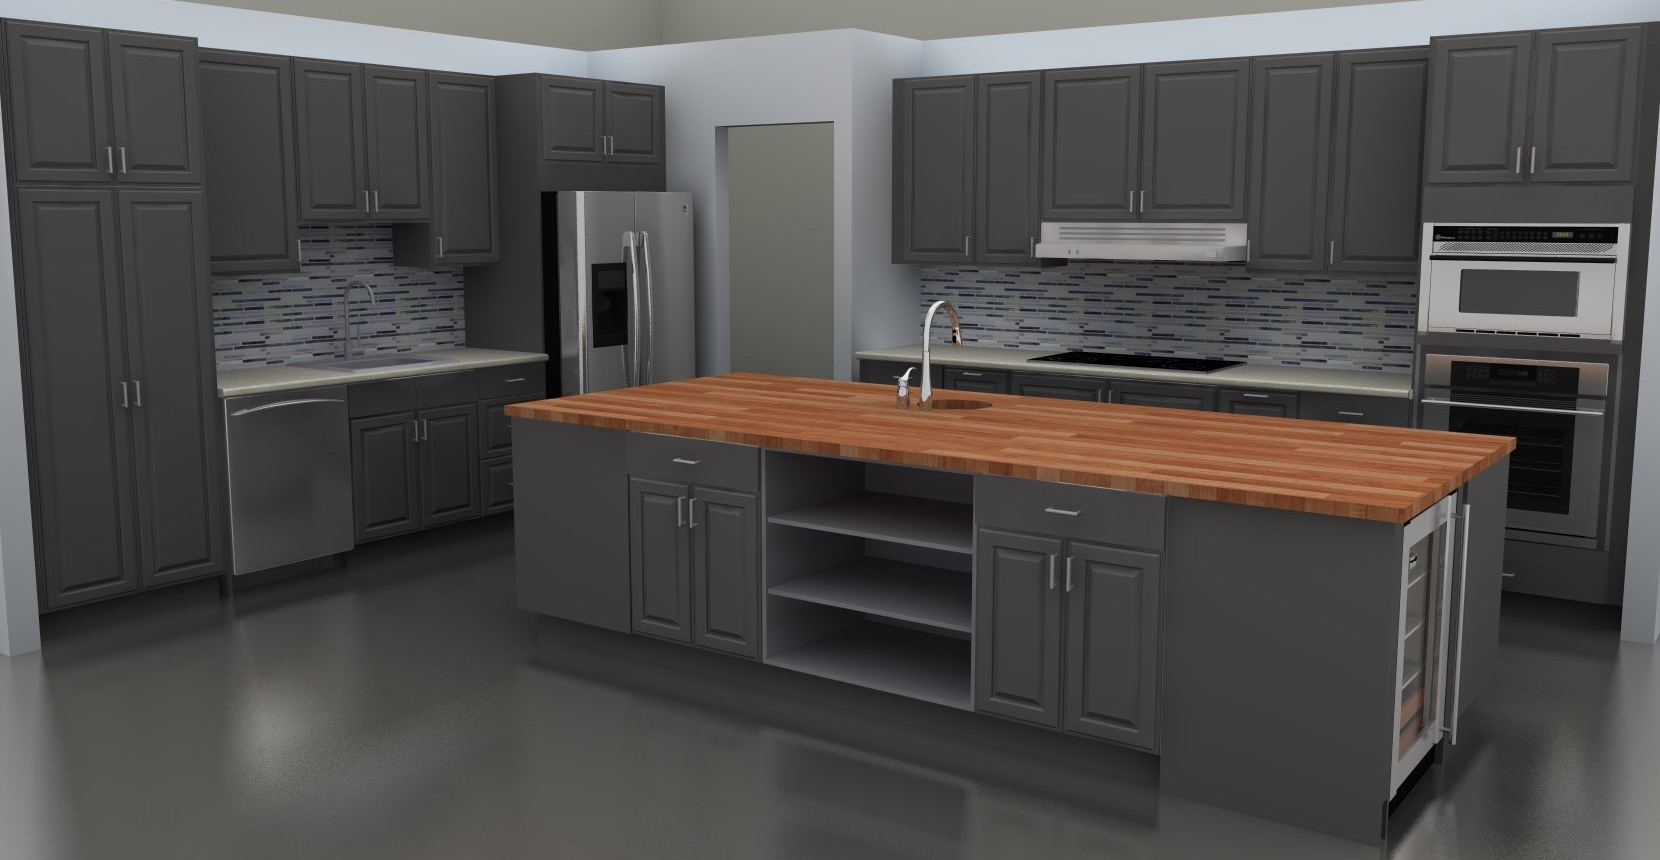 Stylish lidingo gray doors for a new ikea kitchen for Kitchen ideas with grey cabinets